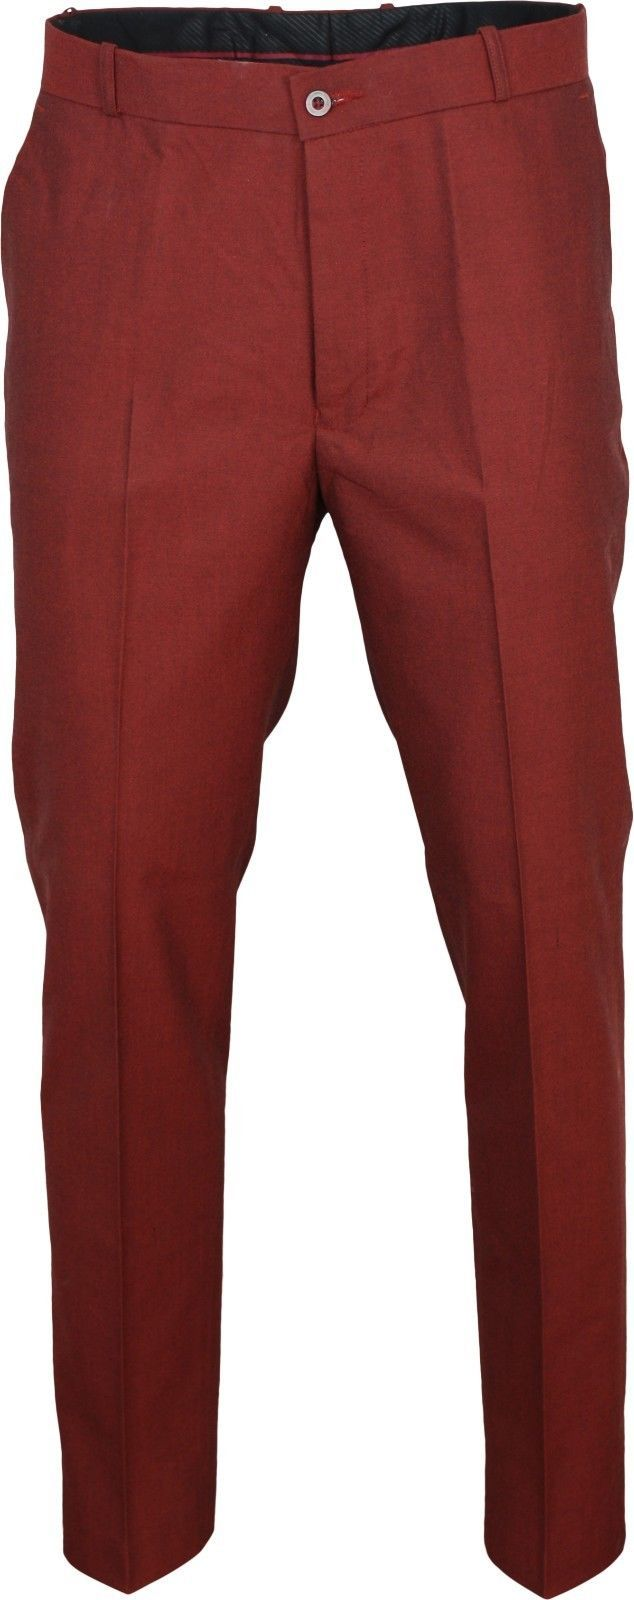 Relco Men/'s Tonic Sta Press Trousers 2 Tone Blue Green Stay Pressed Mod Skins